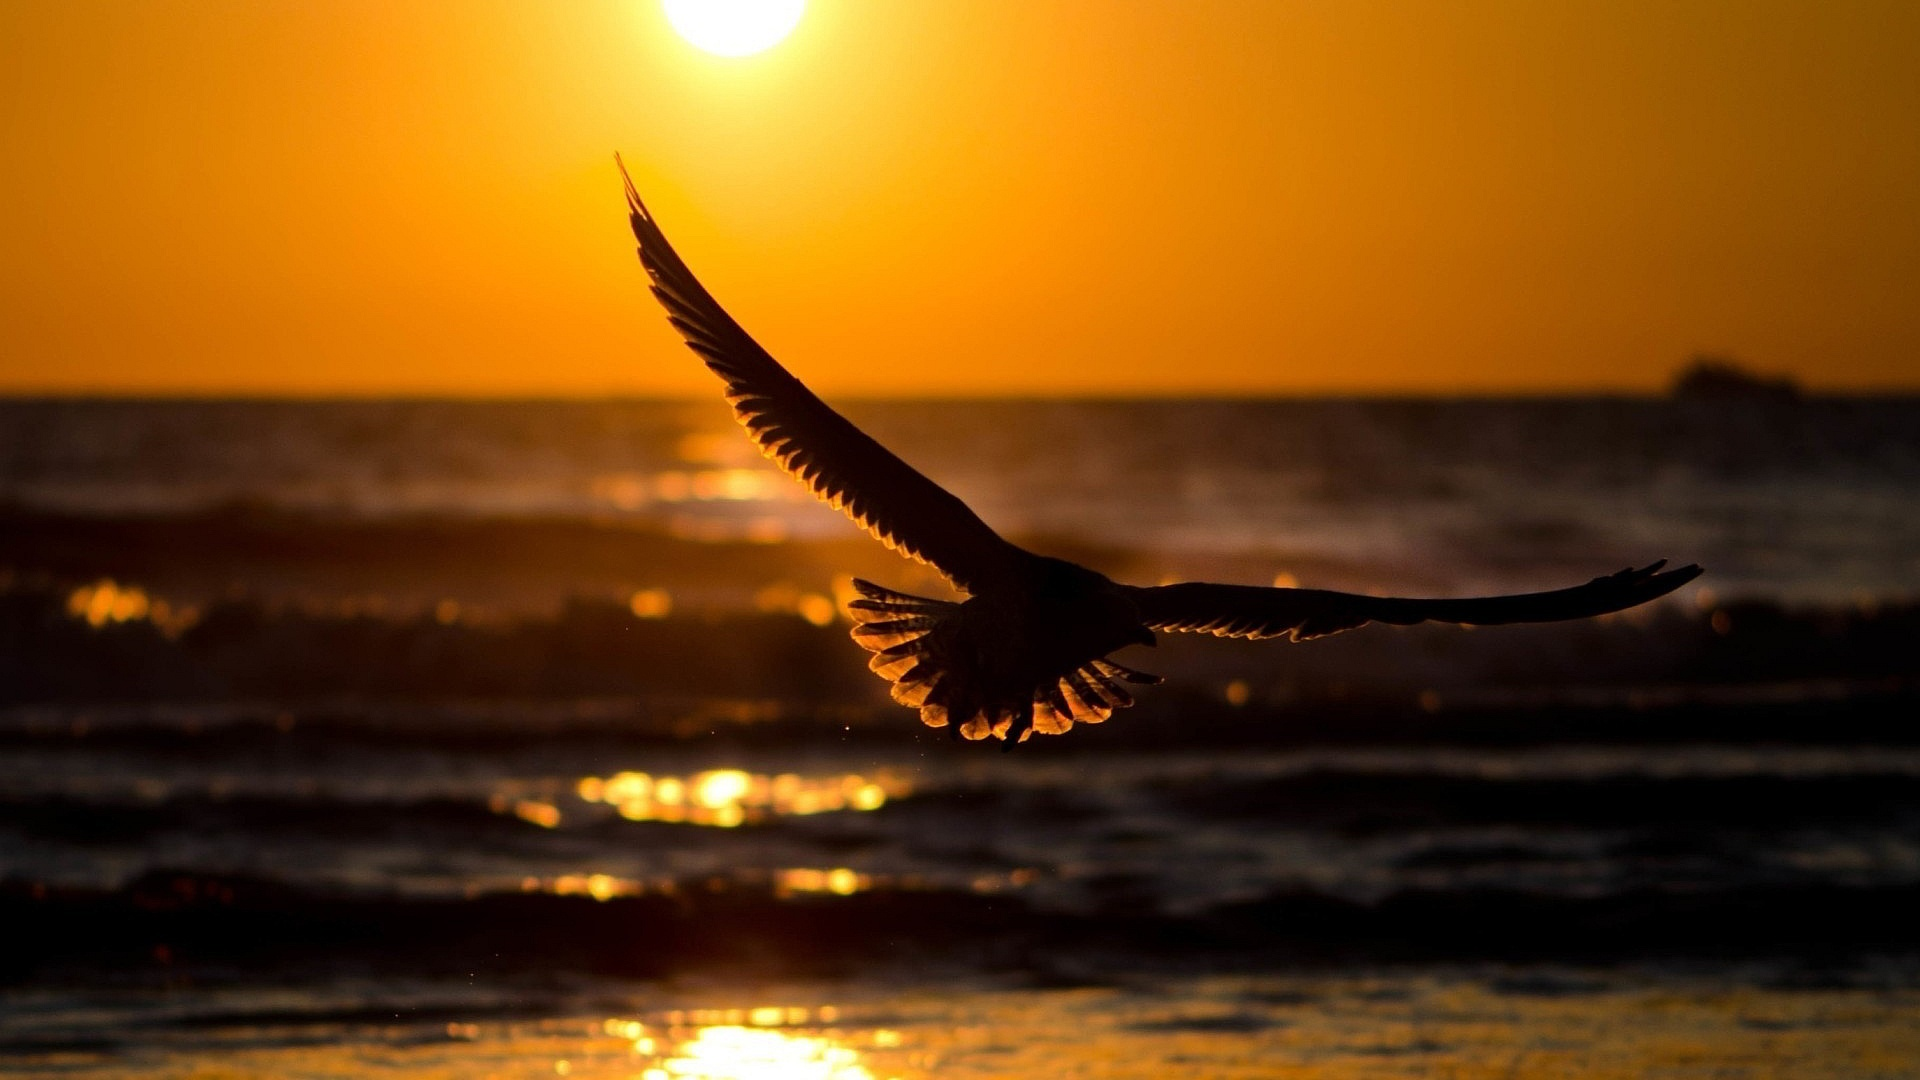 ... Flying Birds HD Wallpapers bird 7 bird 8 bird 9 ...